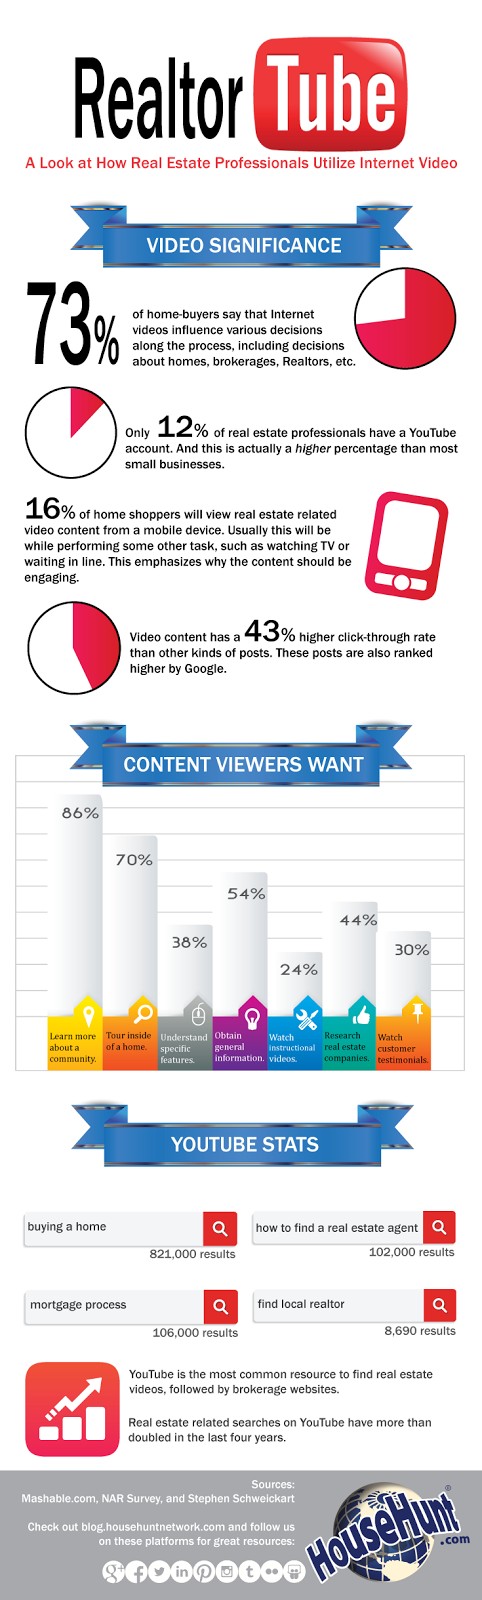 The Real Estate Word: How REALTORS Should Use Video - INFOGRAPHIC ...